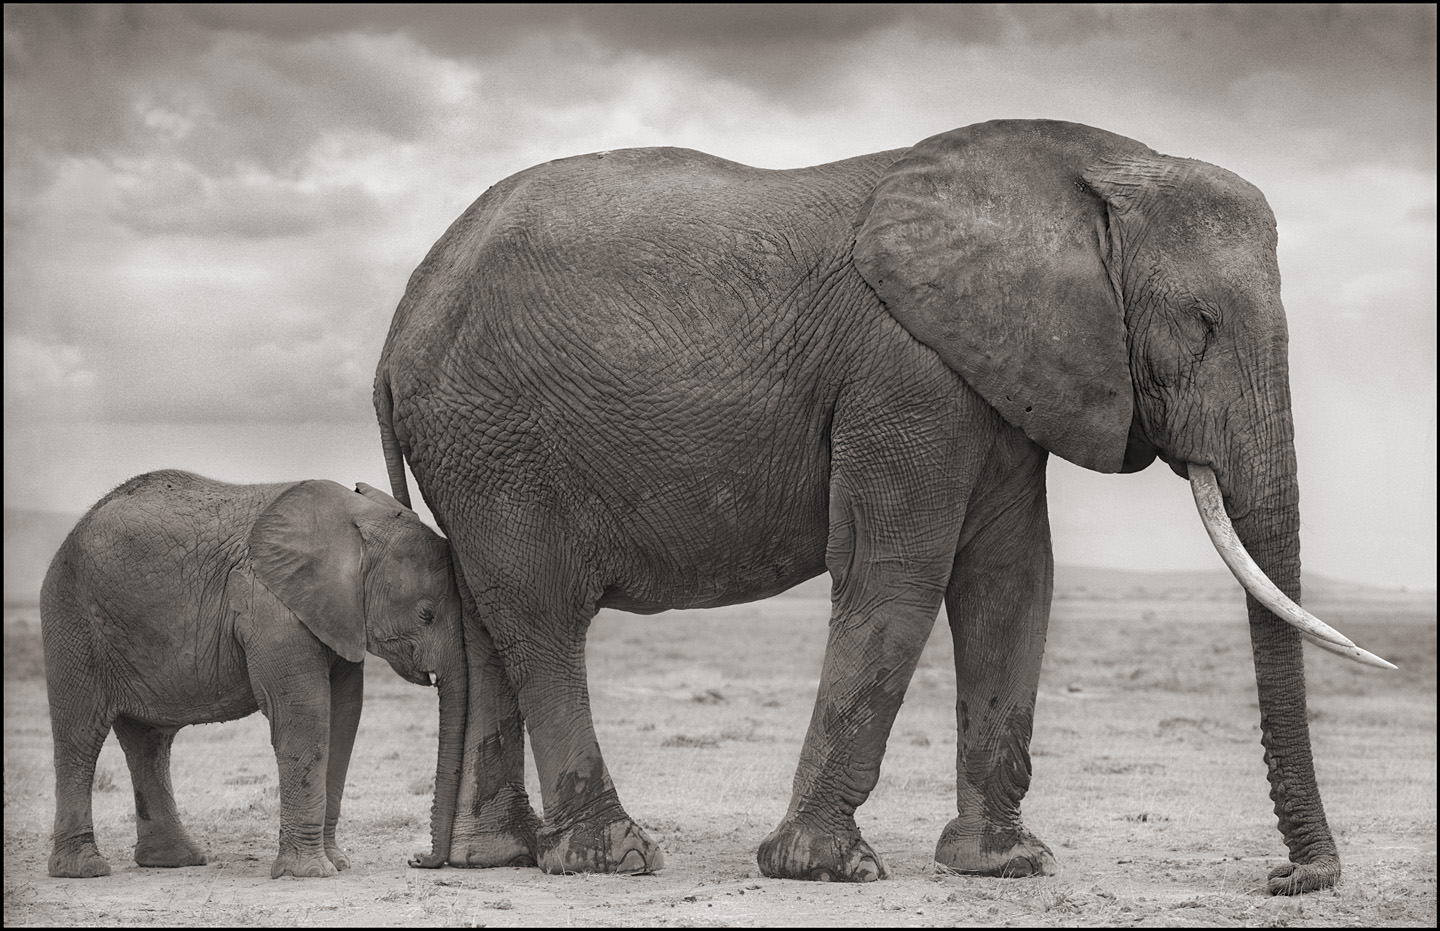 © Nick Brandt, Elephant Mother with Baby at Leg, Amboseli, 2012. Courtesy of the Artist and Hasted Kraeutler, NYC.